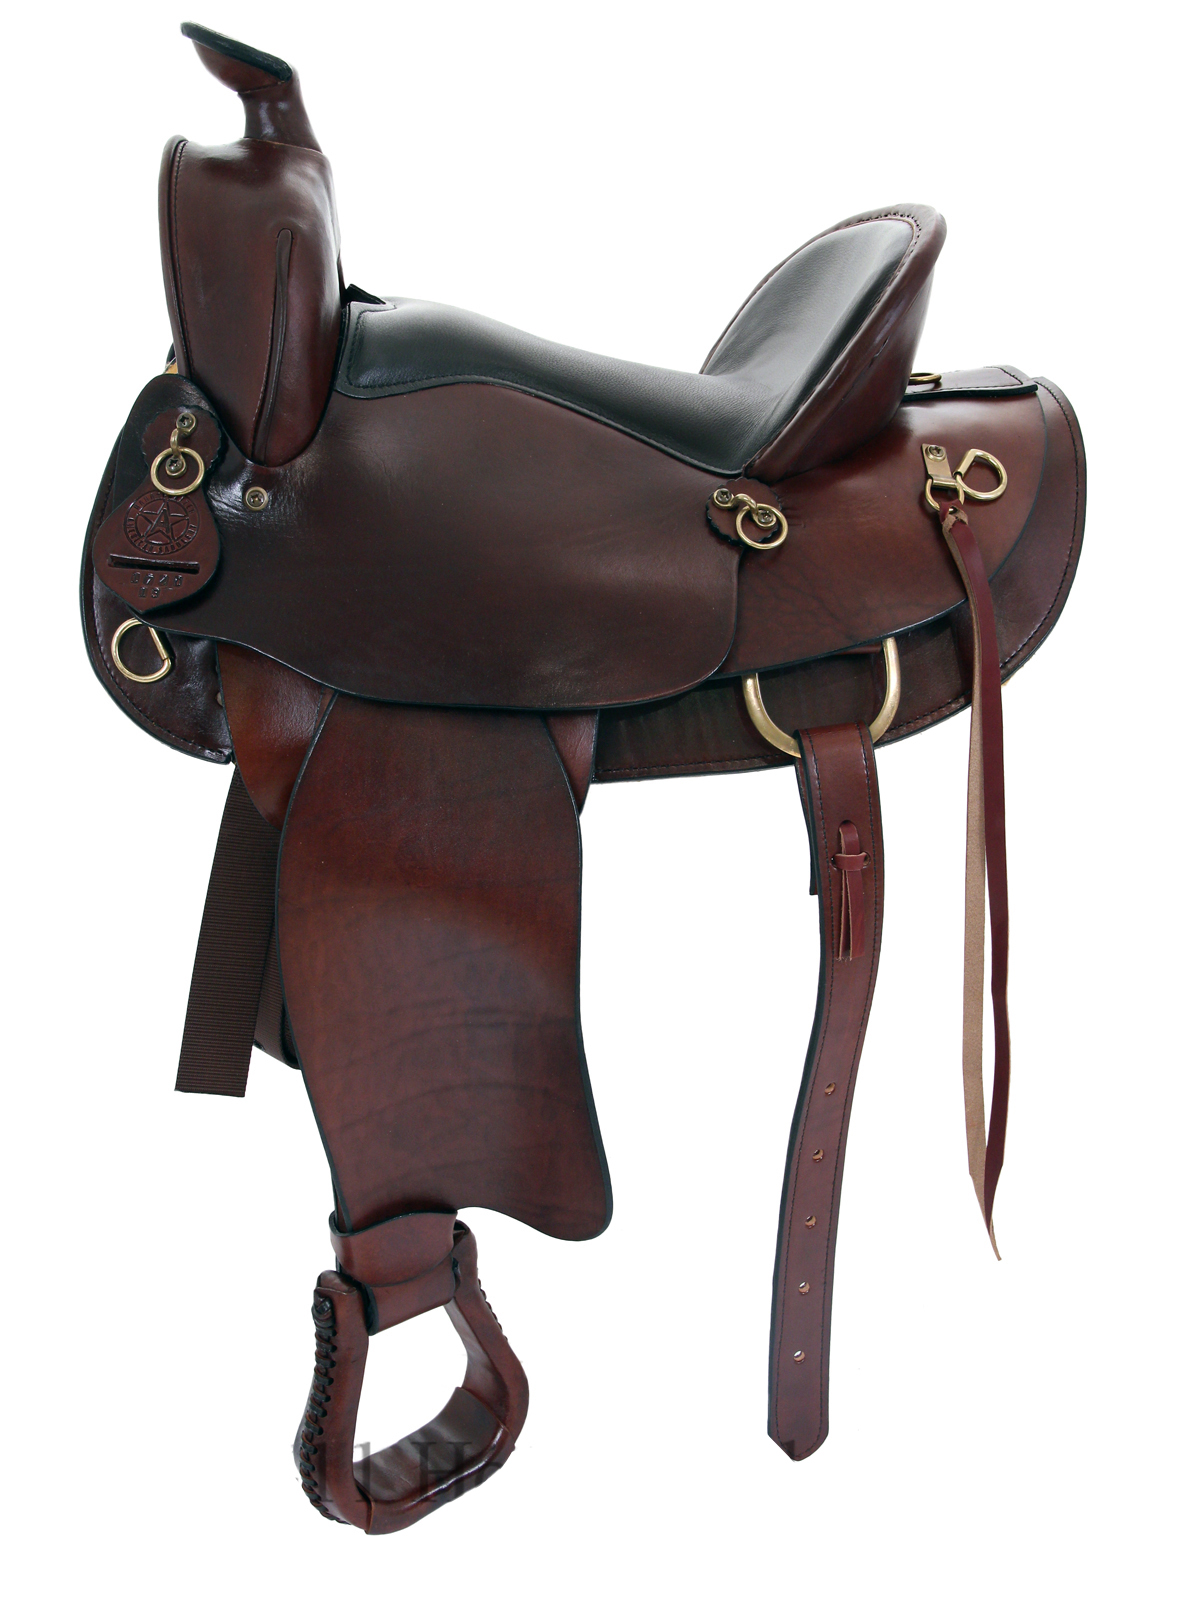 15inch 16inch American Saddlery The Mule Tamer Saddle 1740